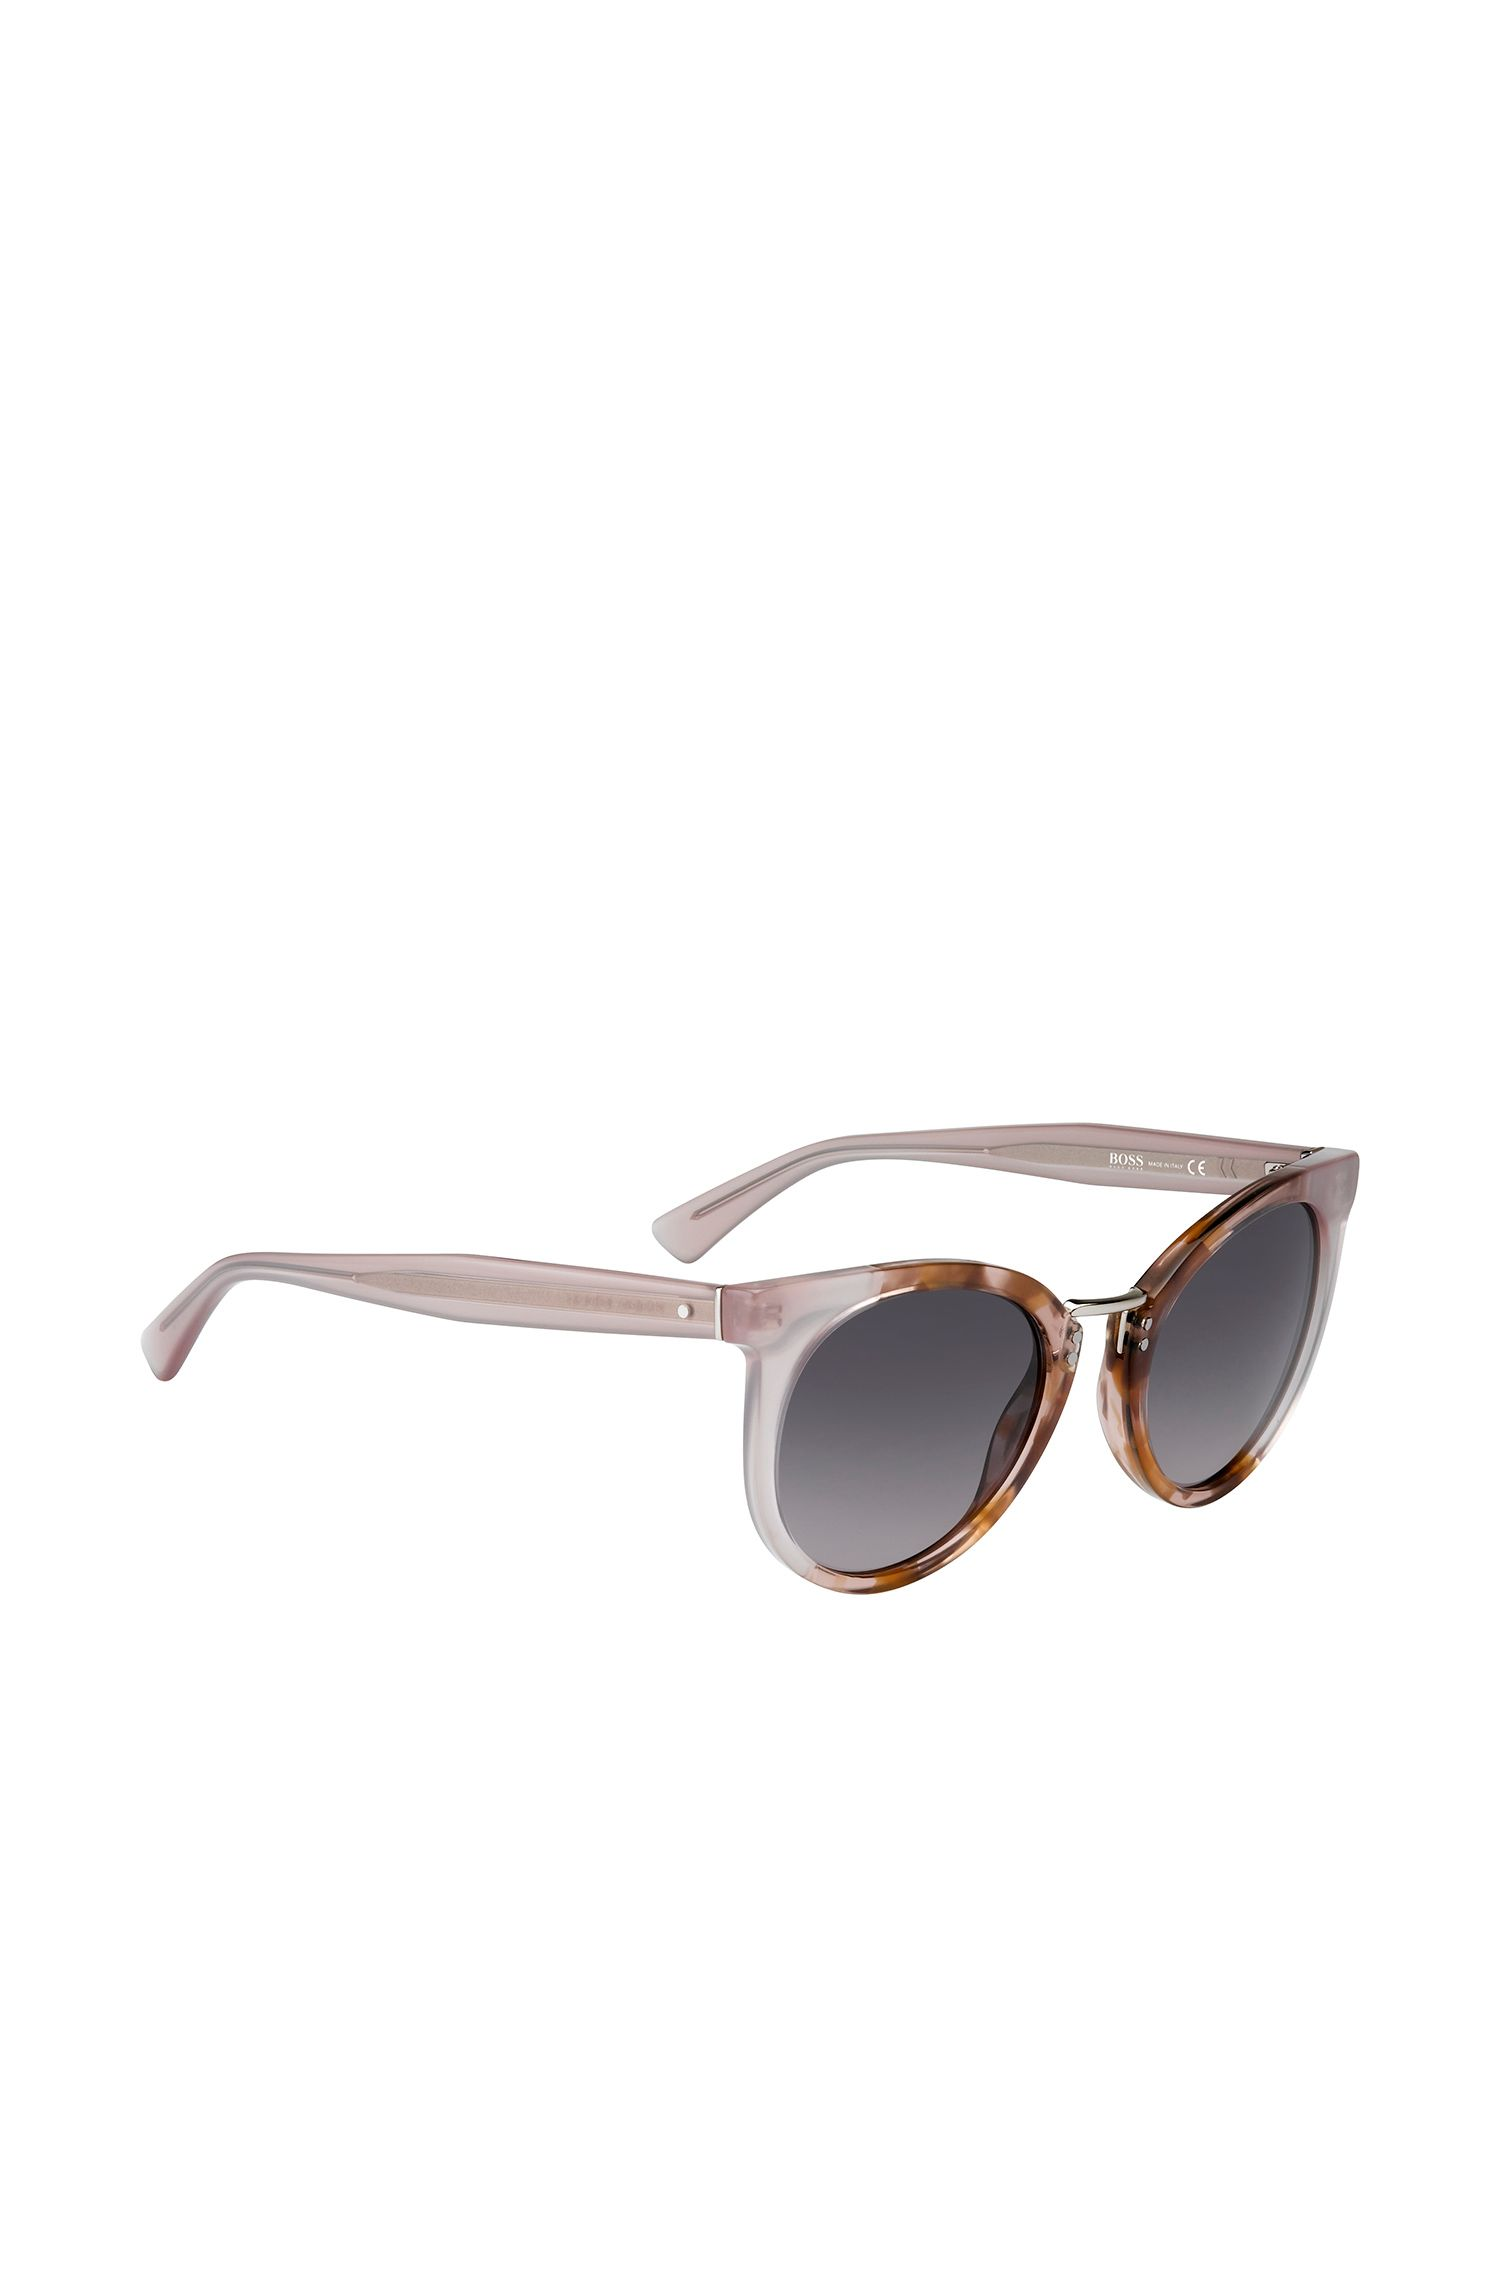 'BOSS 0793S' | Gray Lens Rounded Cateye Havana Sunglasses